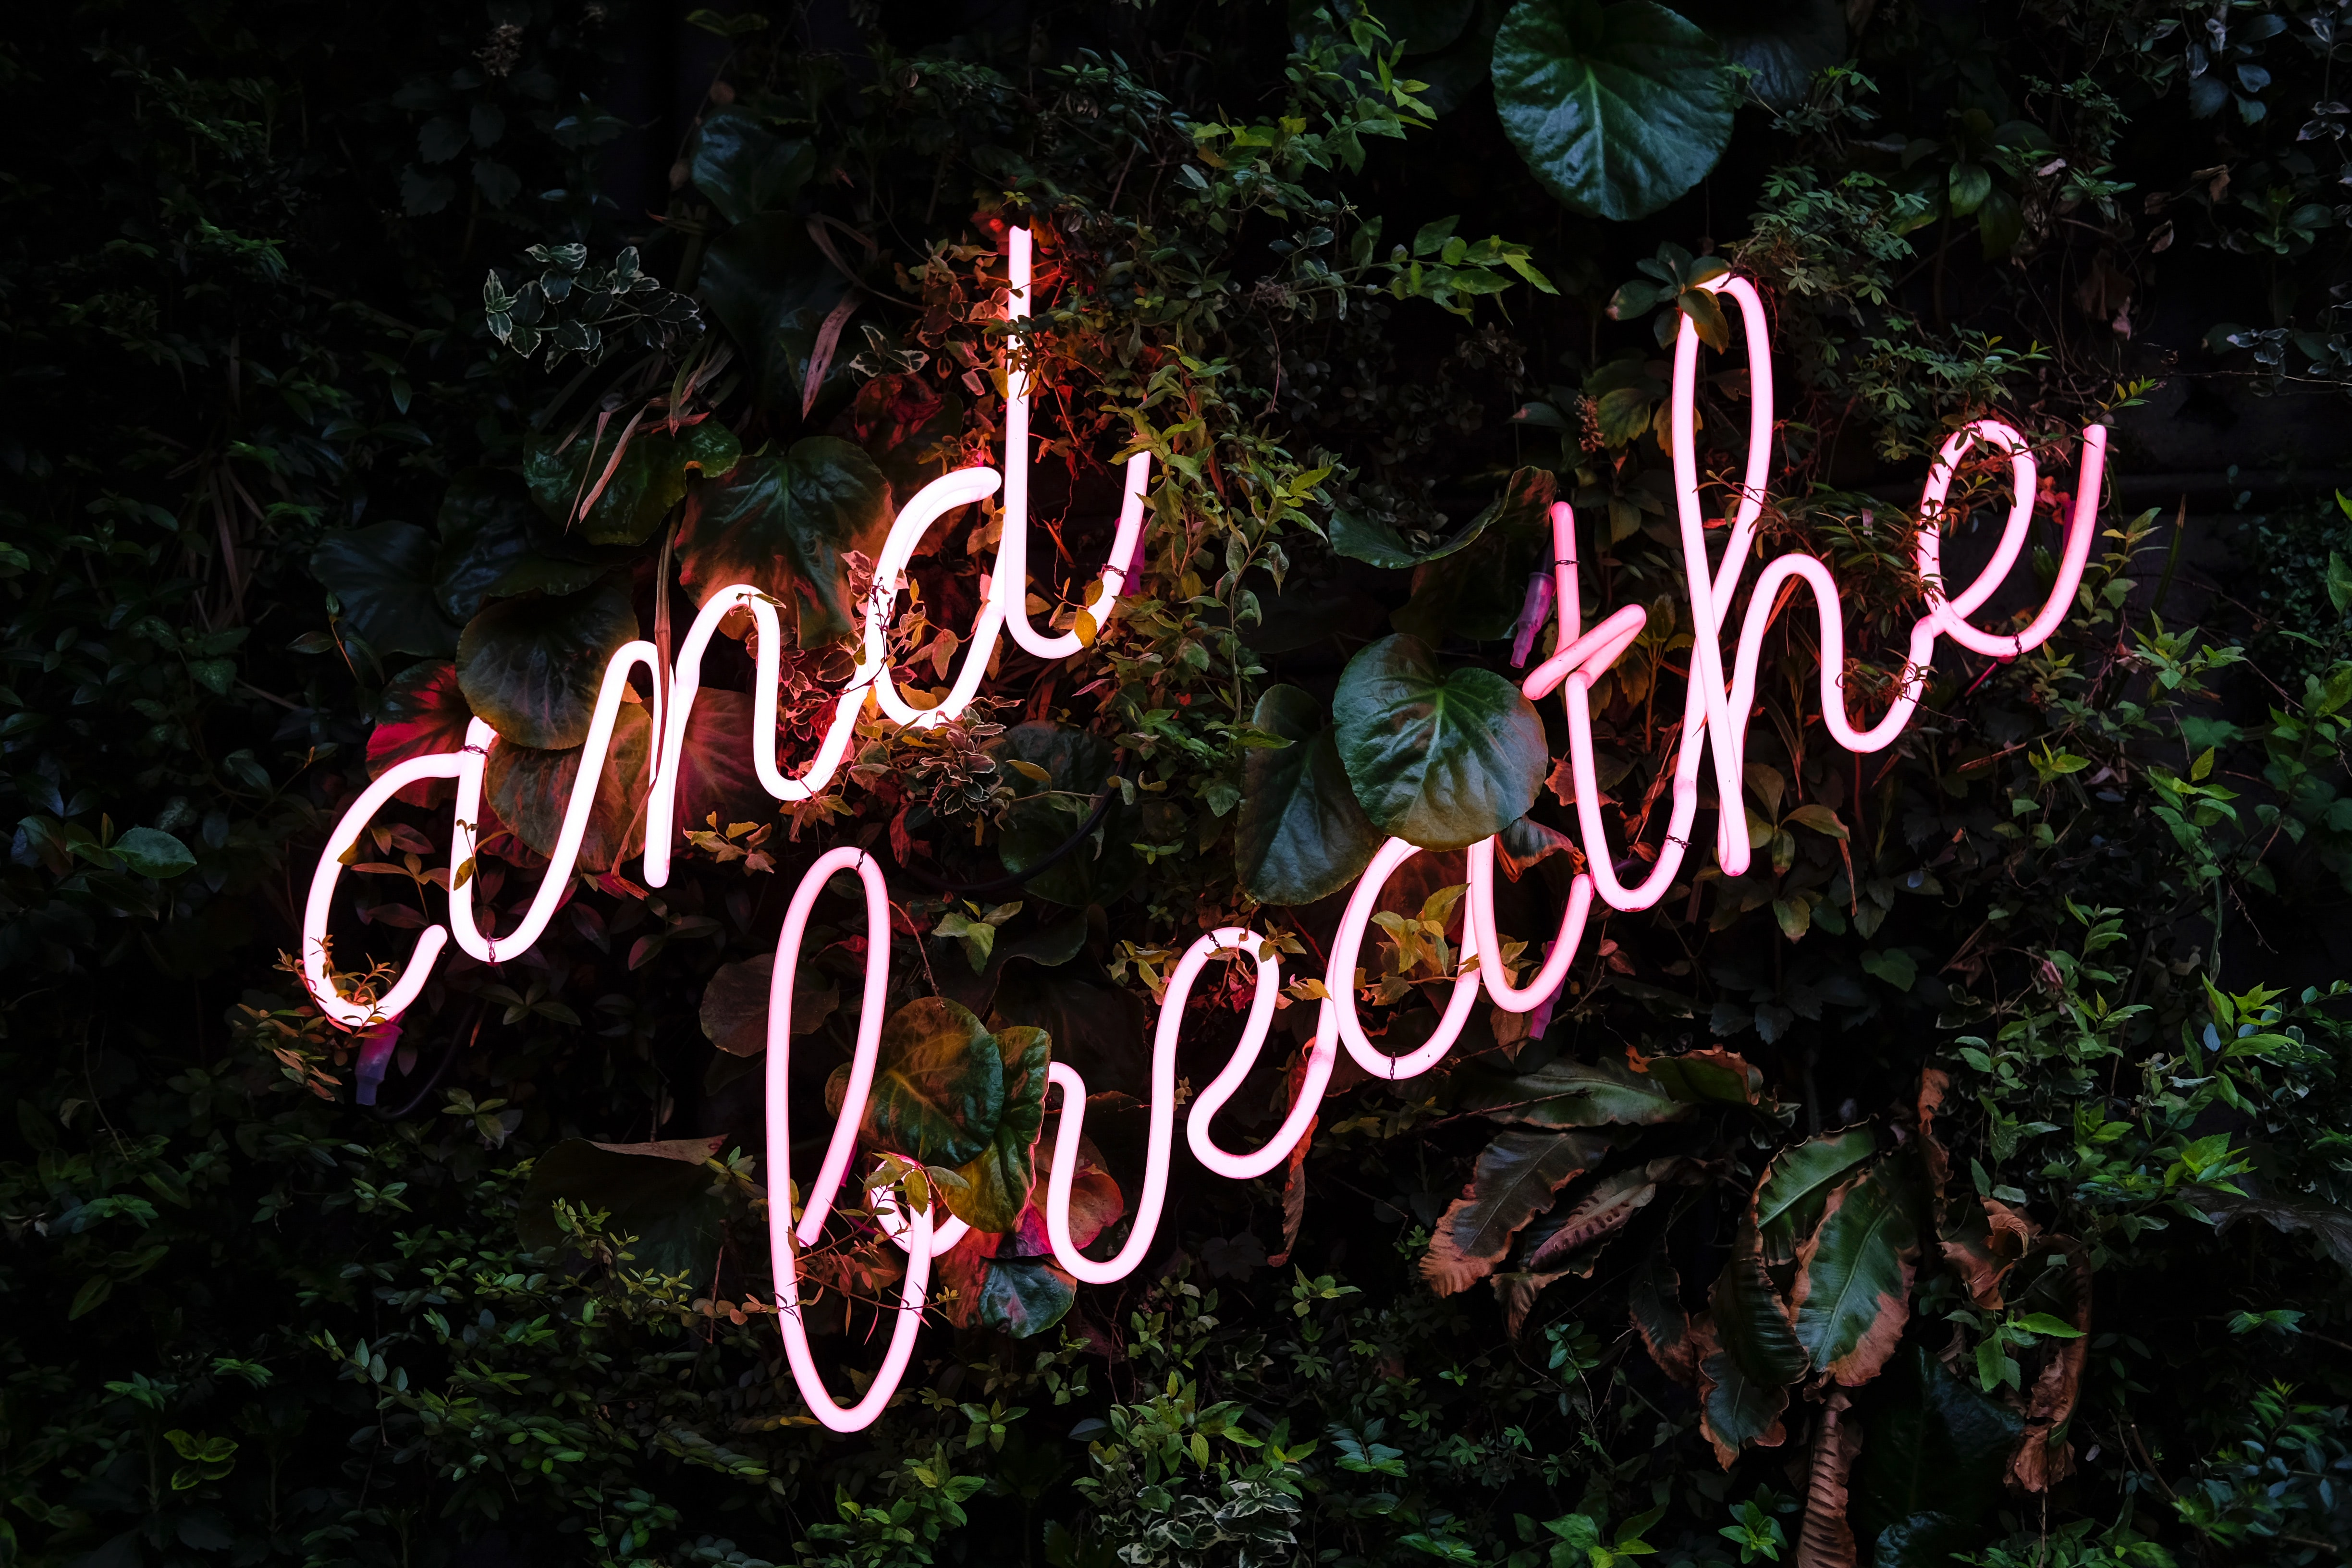 breathing to relieve stress, anxiety relief